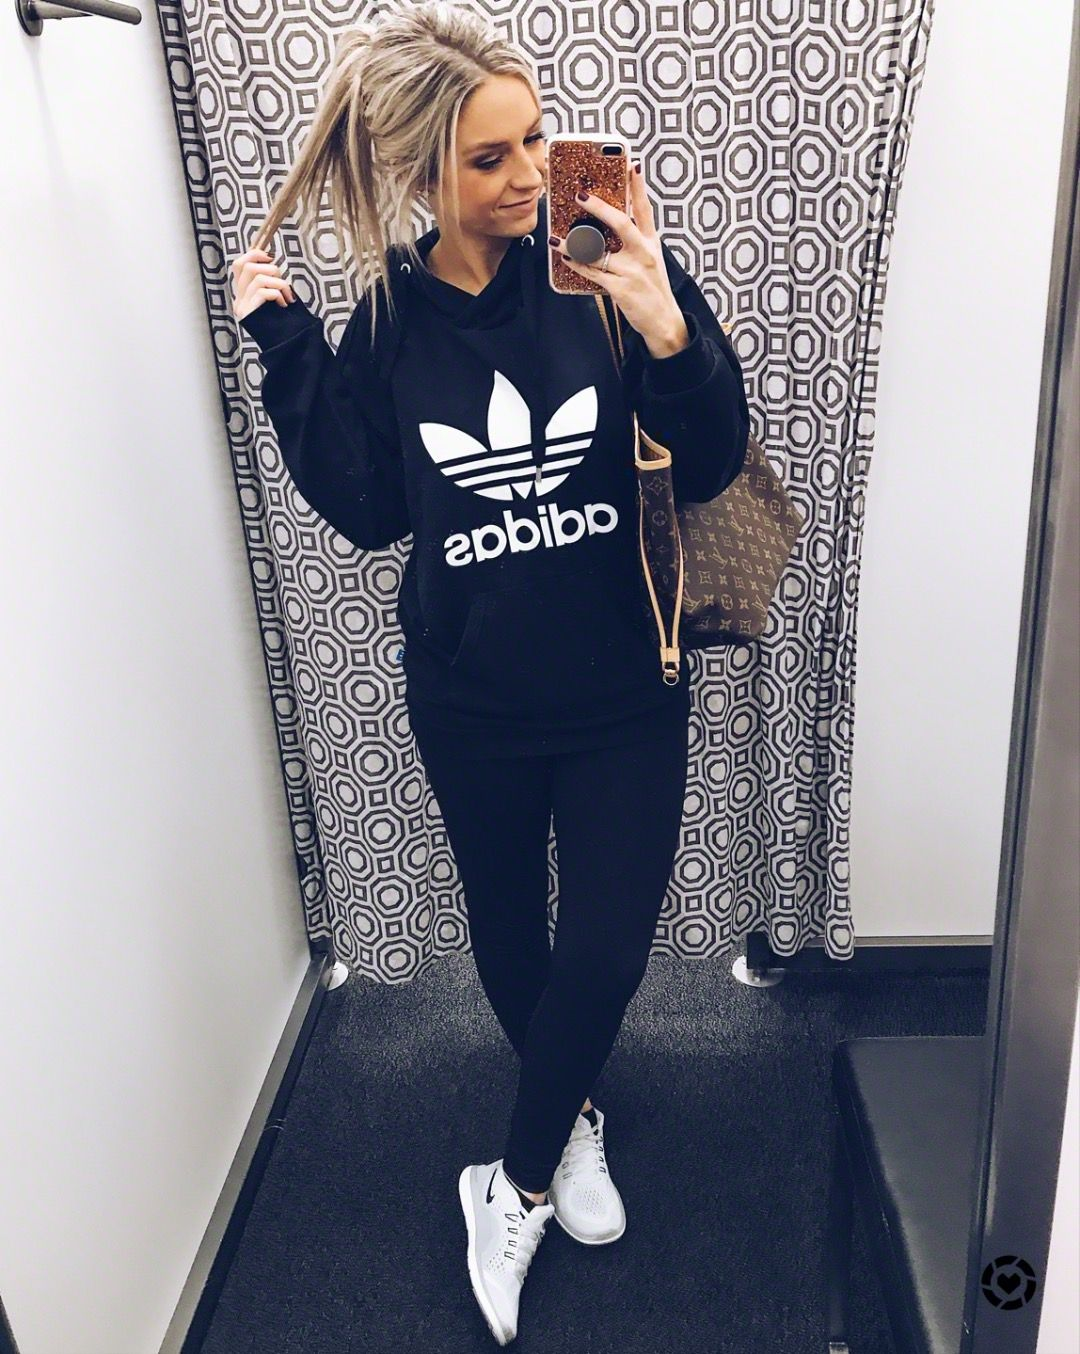 The Cutest Athleisure Outfit Weekend Wear Comfy Adidas Hoodie Athleisure Outfits Winter Weekend Wear Hoody Outfits Athleisure Outfits Winter [ 1354 x 1080 Pixel ]